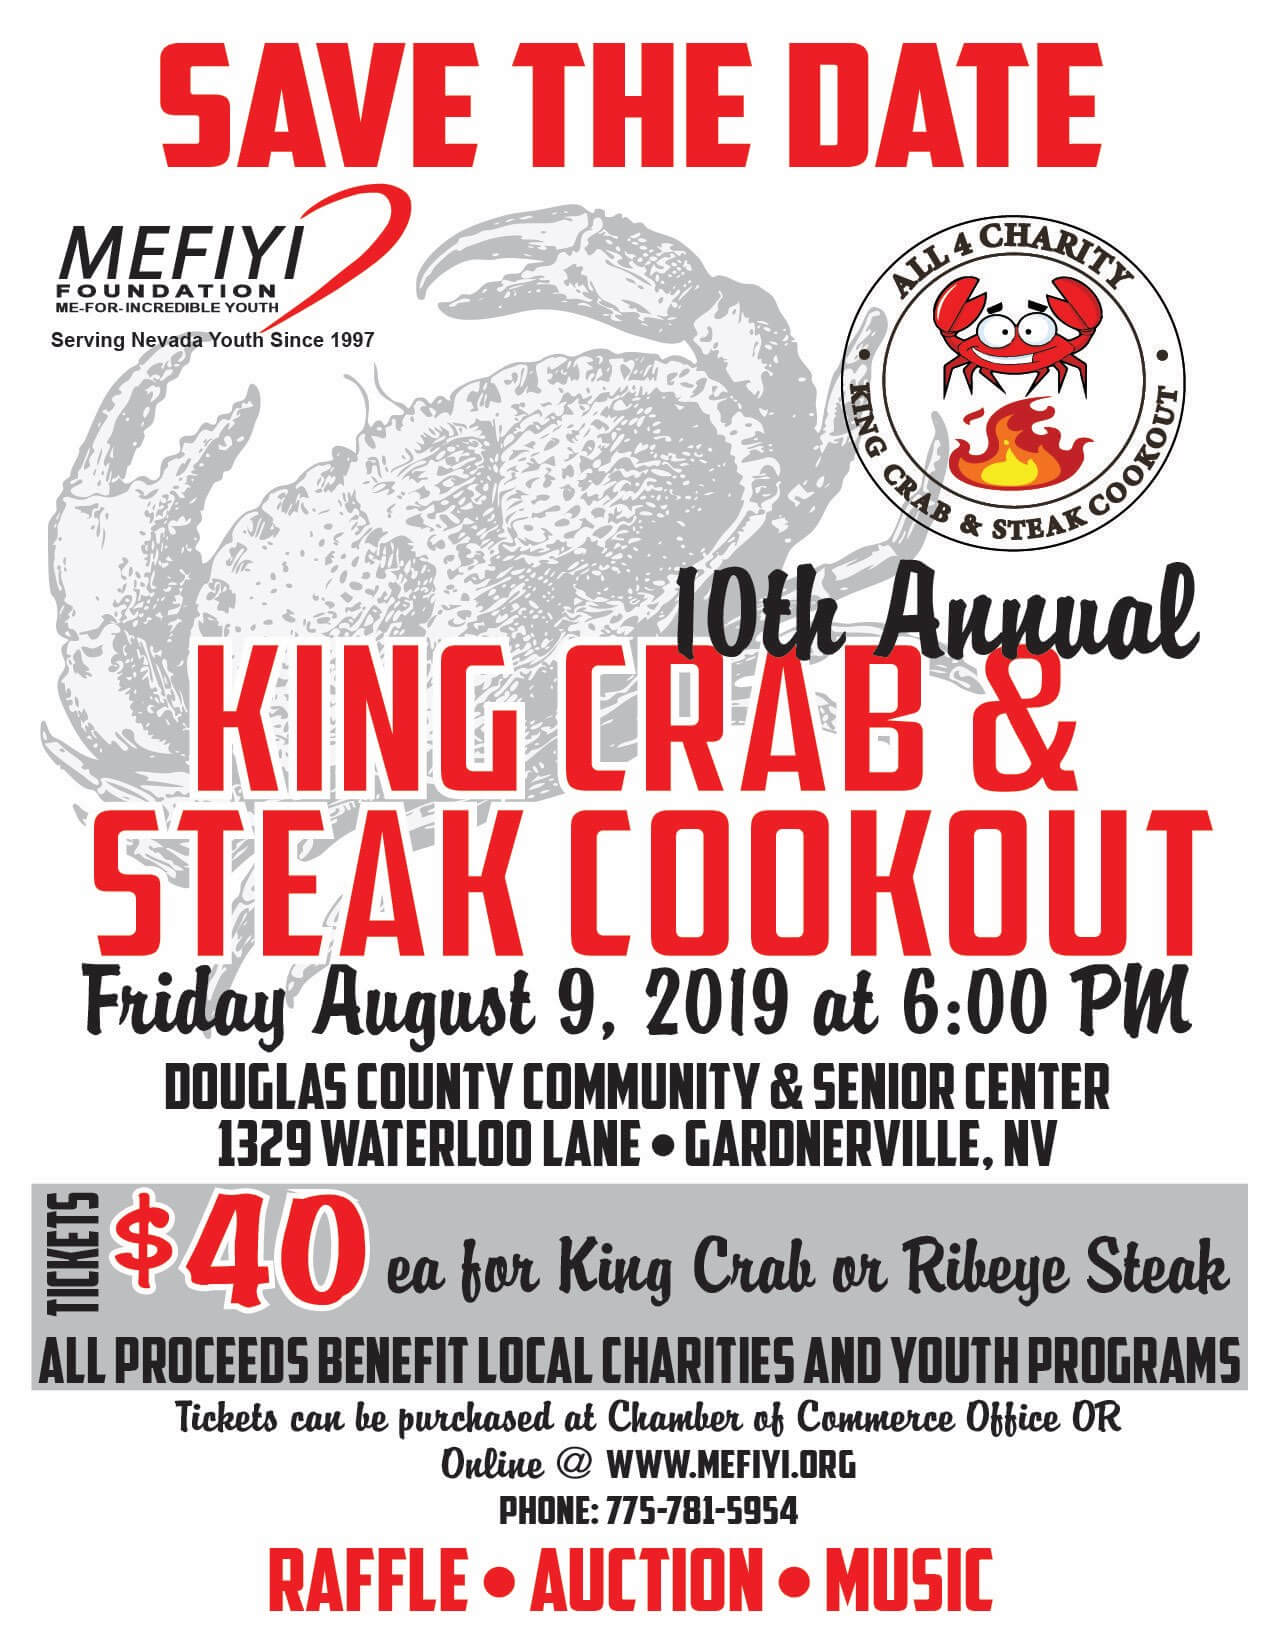 King Crab and Steak Cookout. August 9, 2019 at 6:00 pm. Email team@mefiyi.org